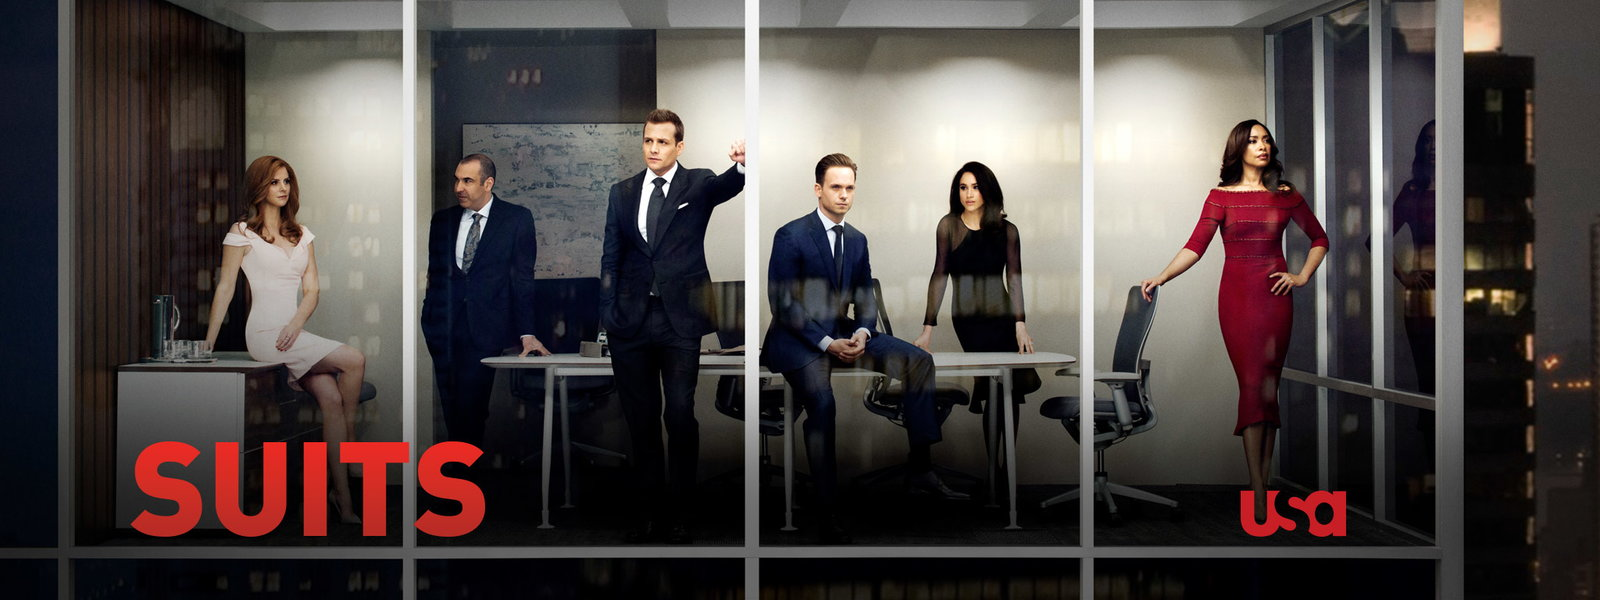 Watch Suits Online | Stream on Hulu